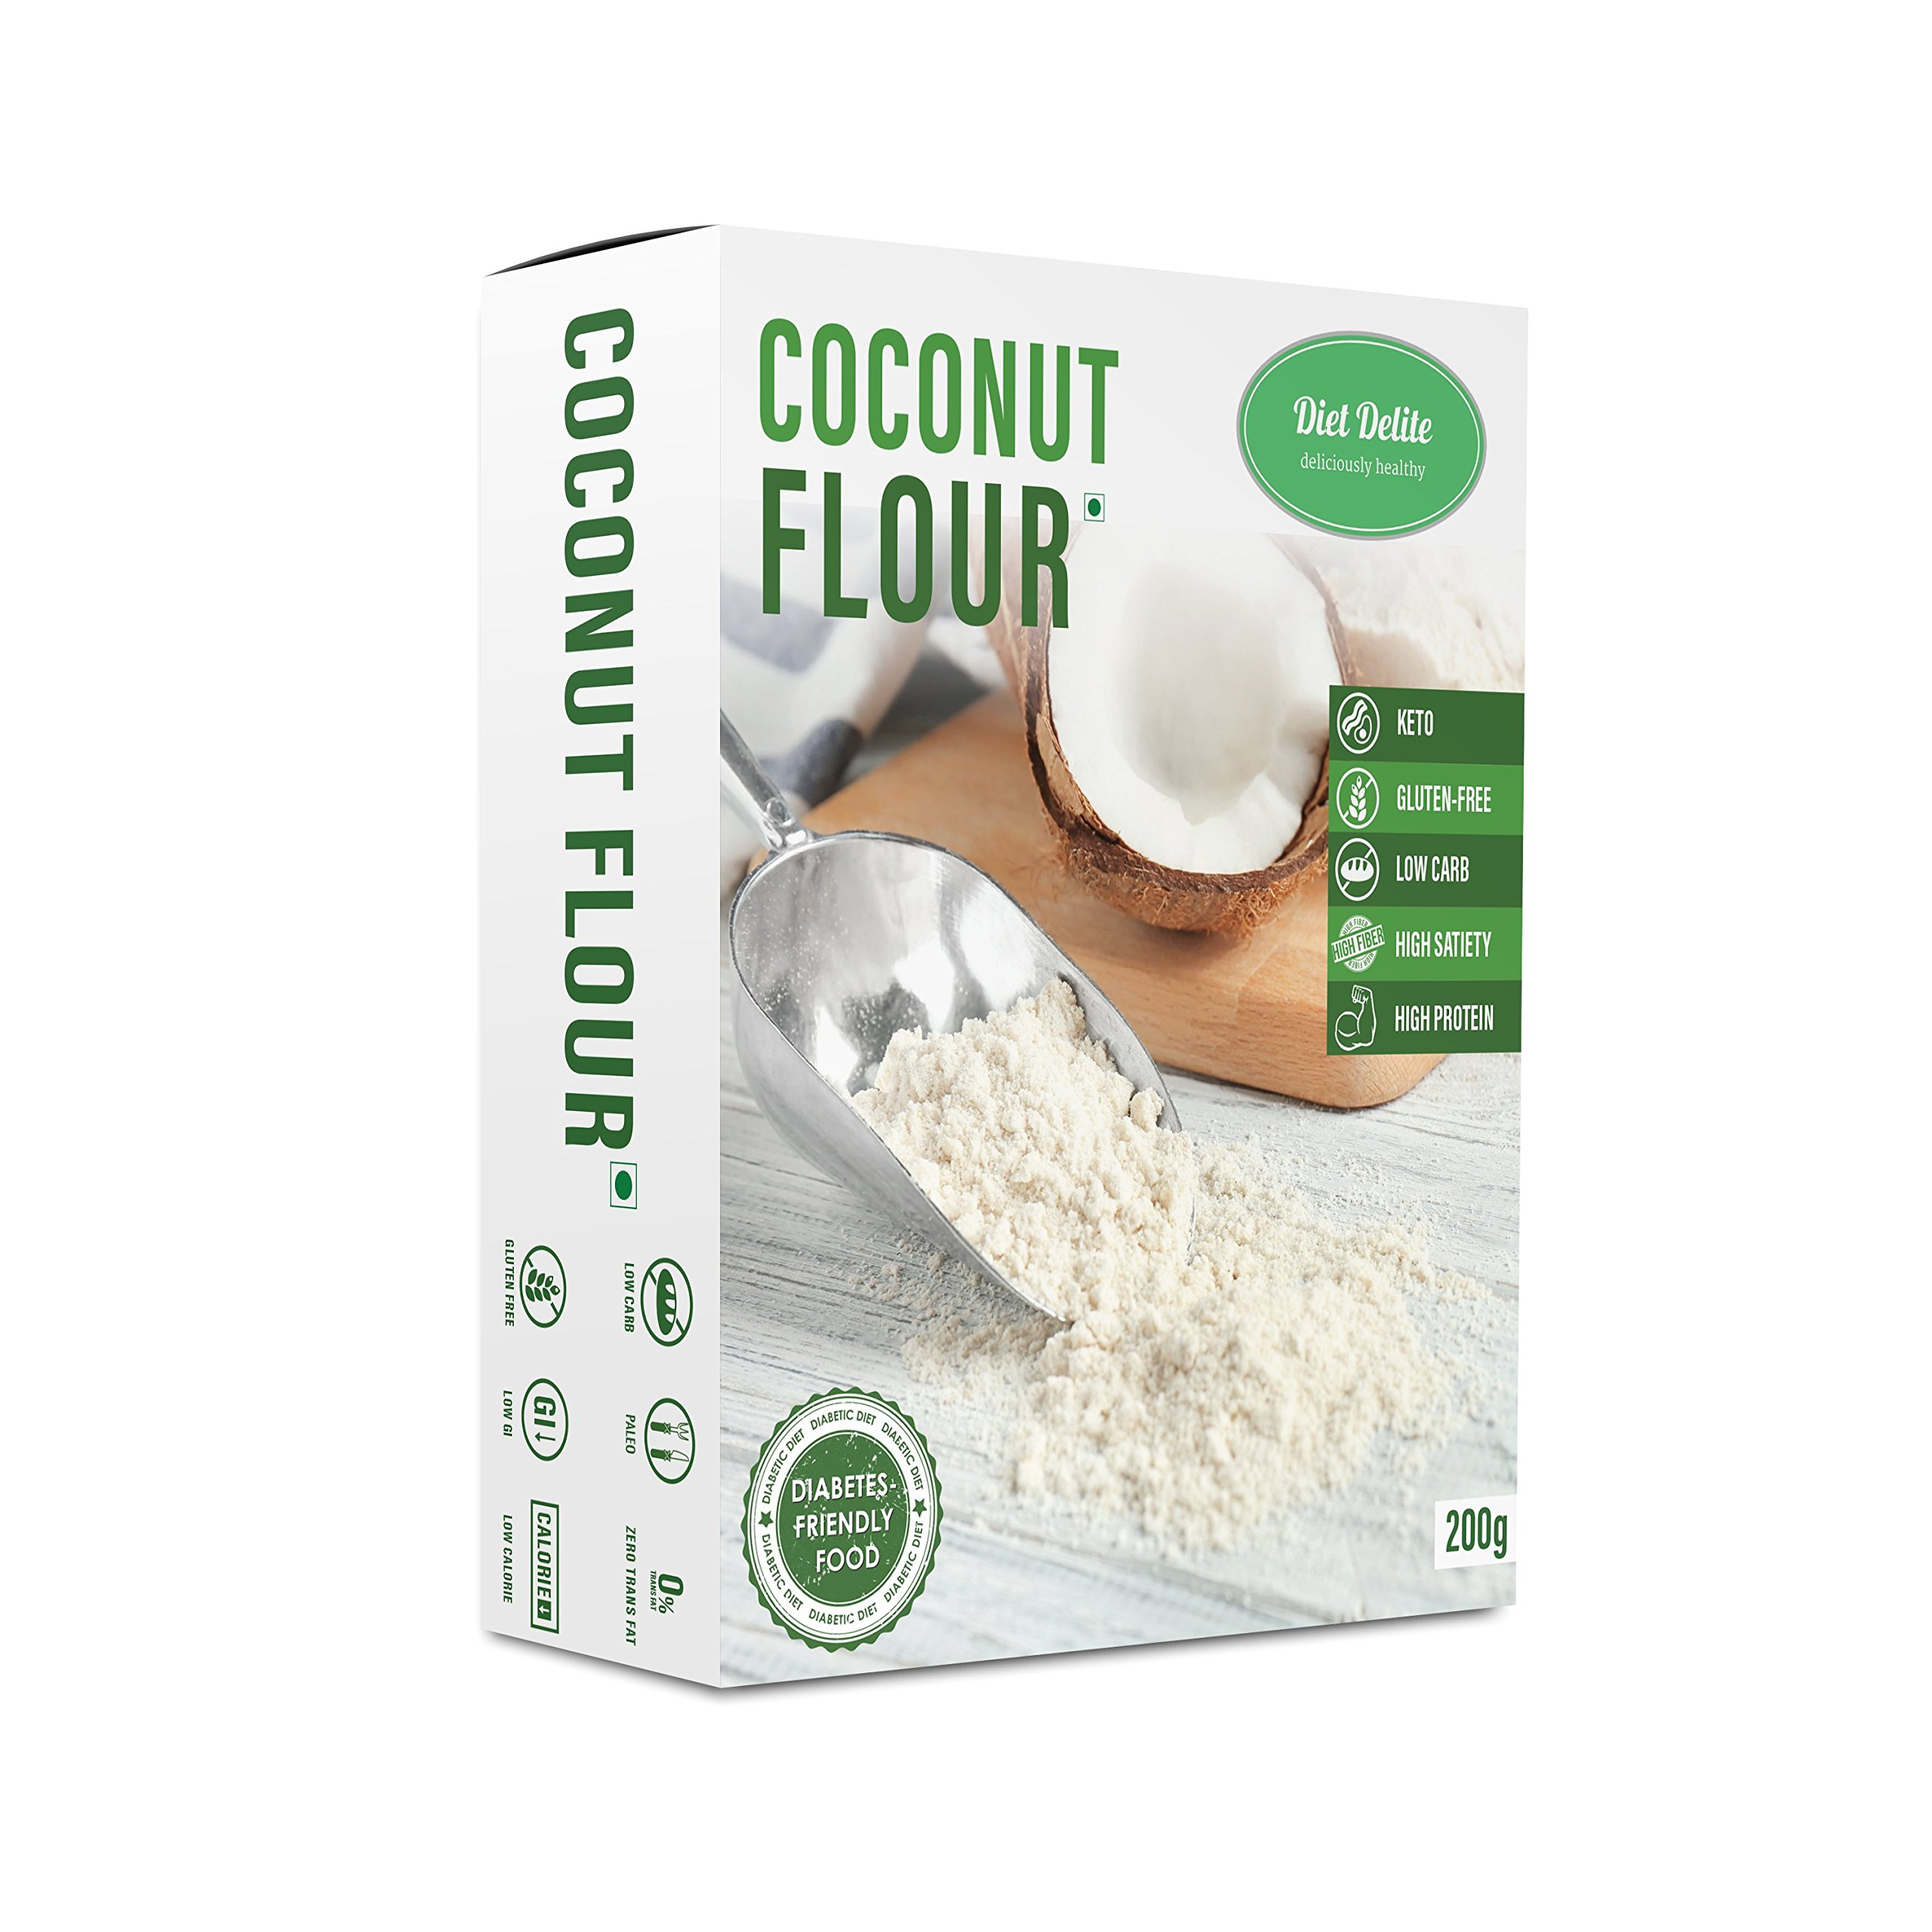 Coconut flour Keto-Glutenfree,Low Carb,Dietary food,High Protien,Tasty Wheat replacement by Diet Delite